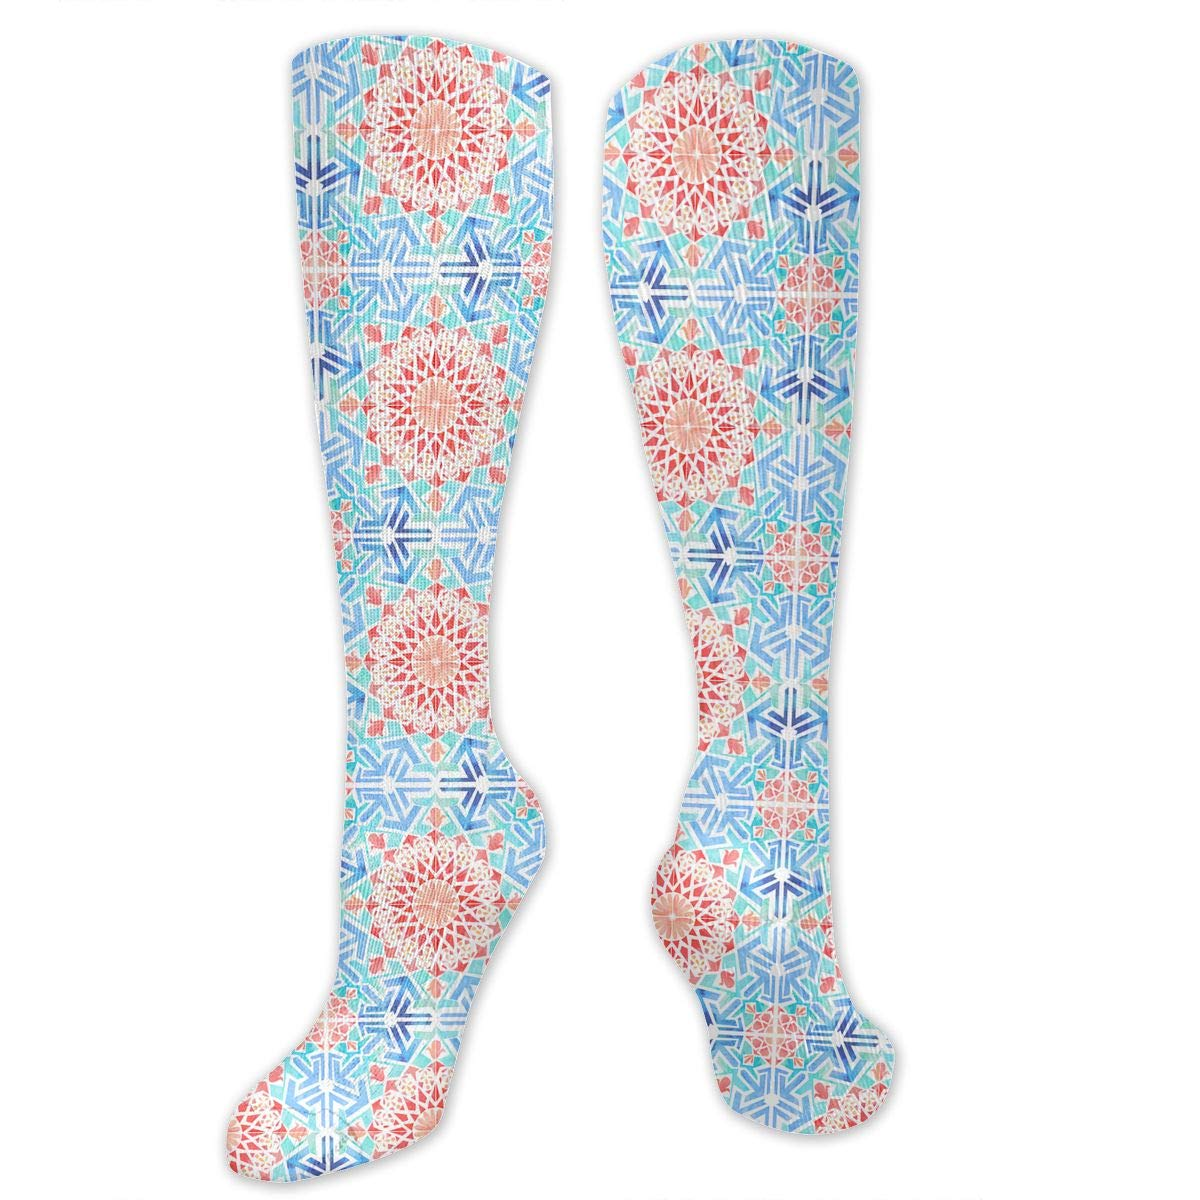 Pena Palace Mens Fun Dress Socks Colorful Pattened Novelty Mid-Calf Crew Socks Premium Cotton Vibrant Art Socks Willbegood99 Watercolour Tile Repeat